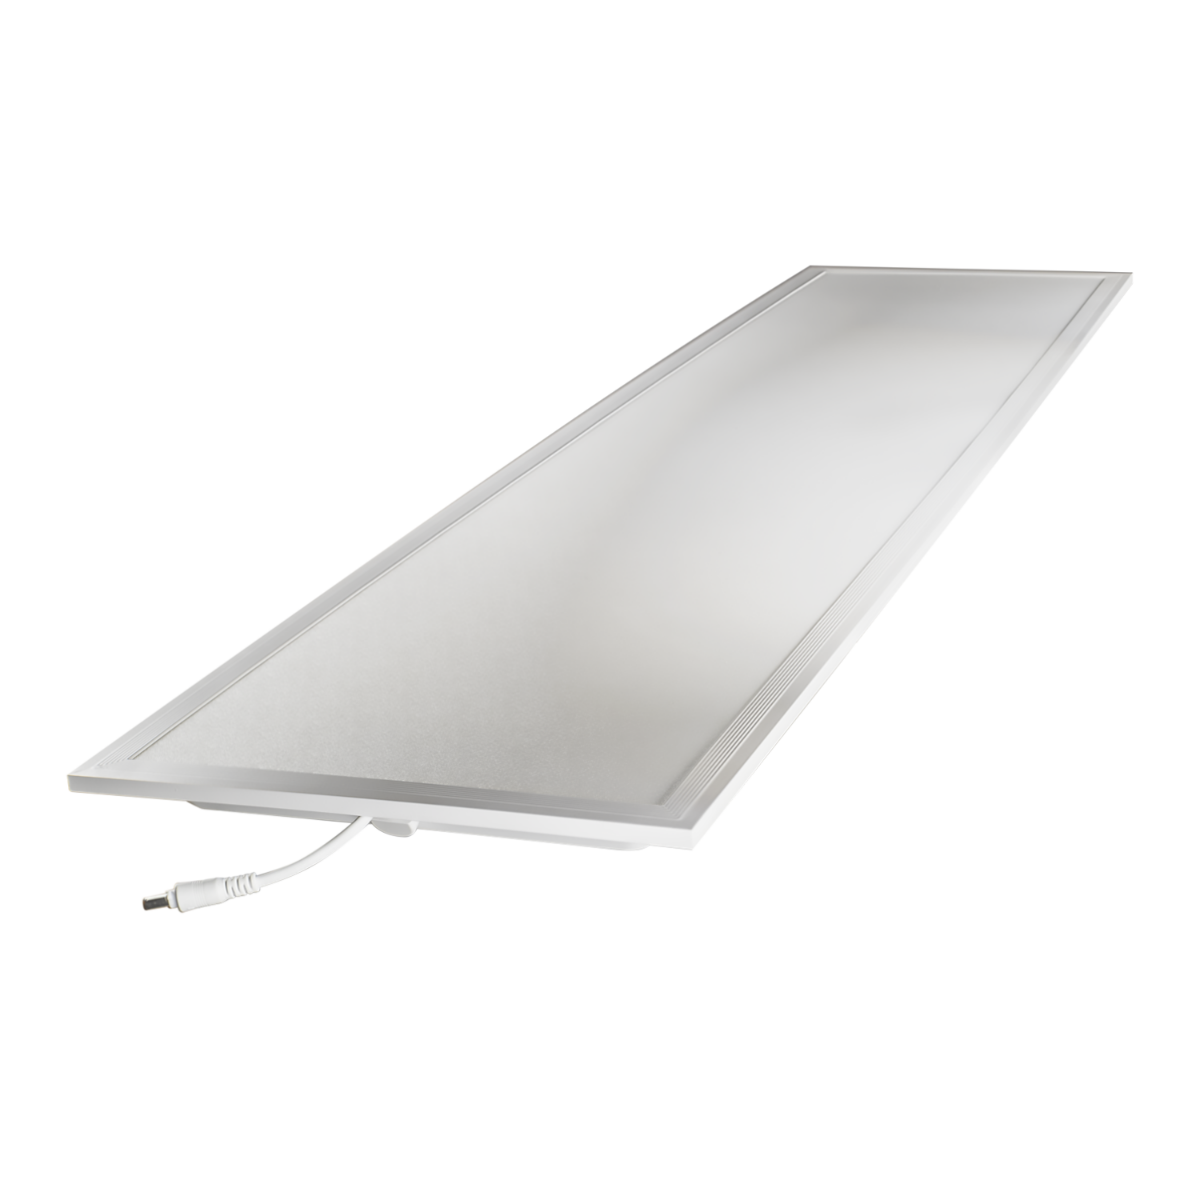 Noxion LED Panel Delta Pro V2.0 Xitanium DALI 30W 30x120cm 6500K 4110lm UGR <19 | Dali Dimmable - Daylight - Replaces 2x36W